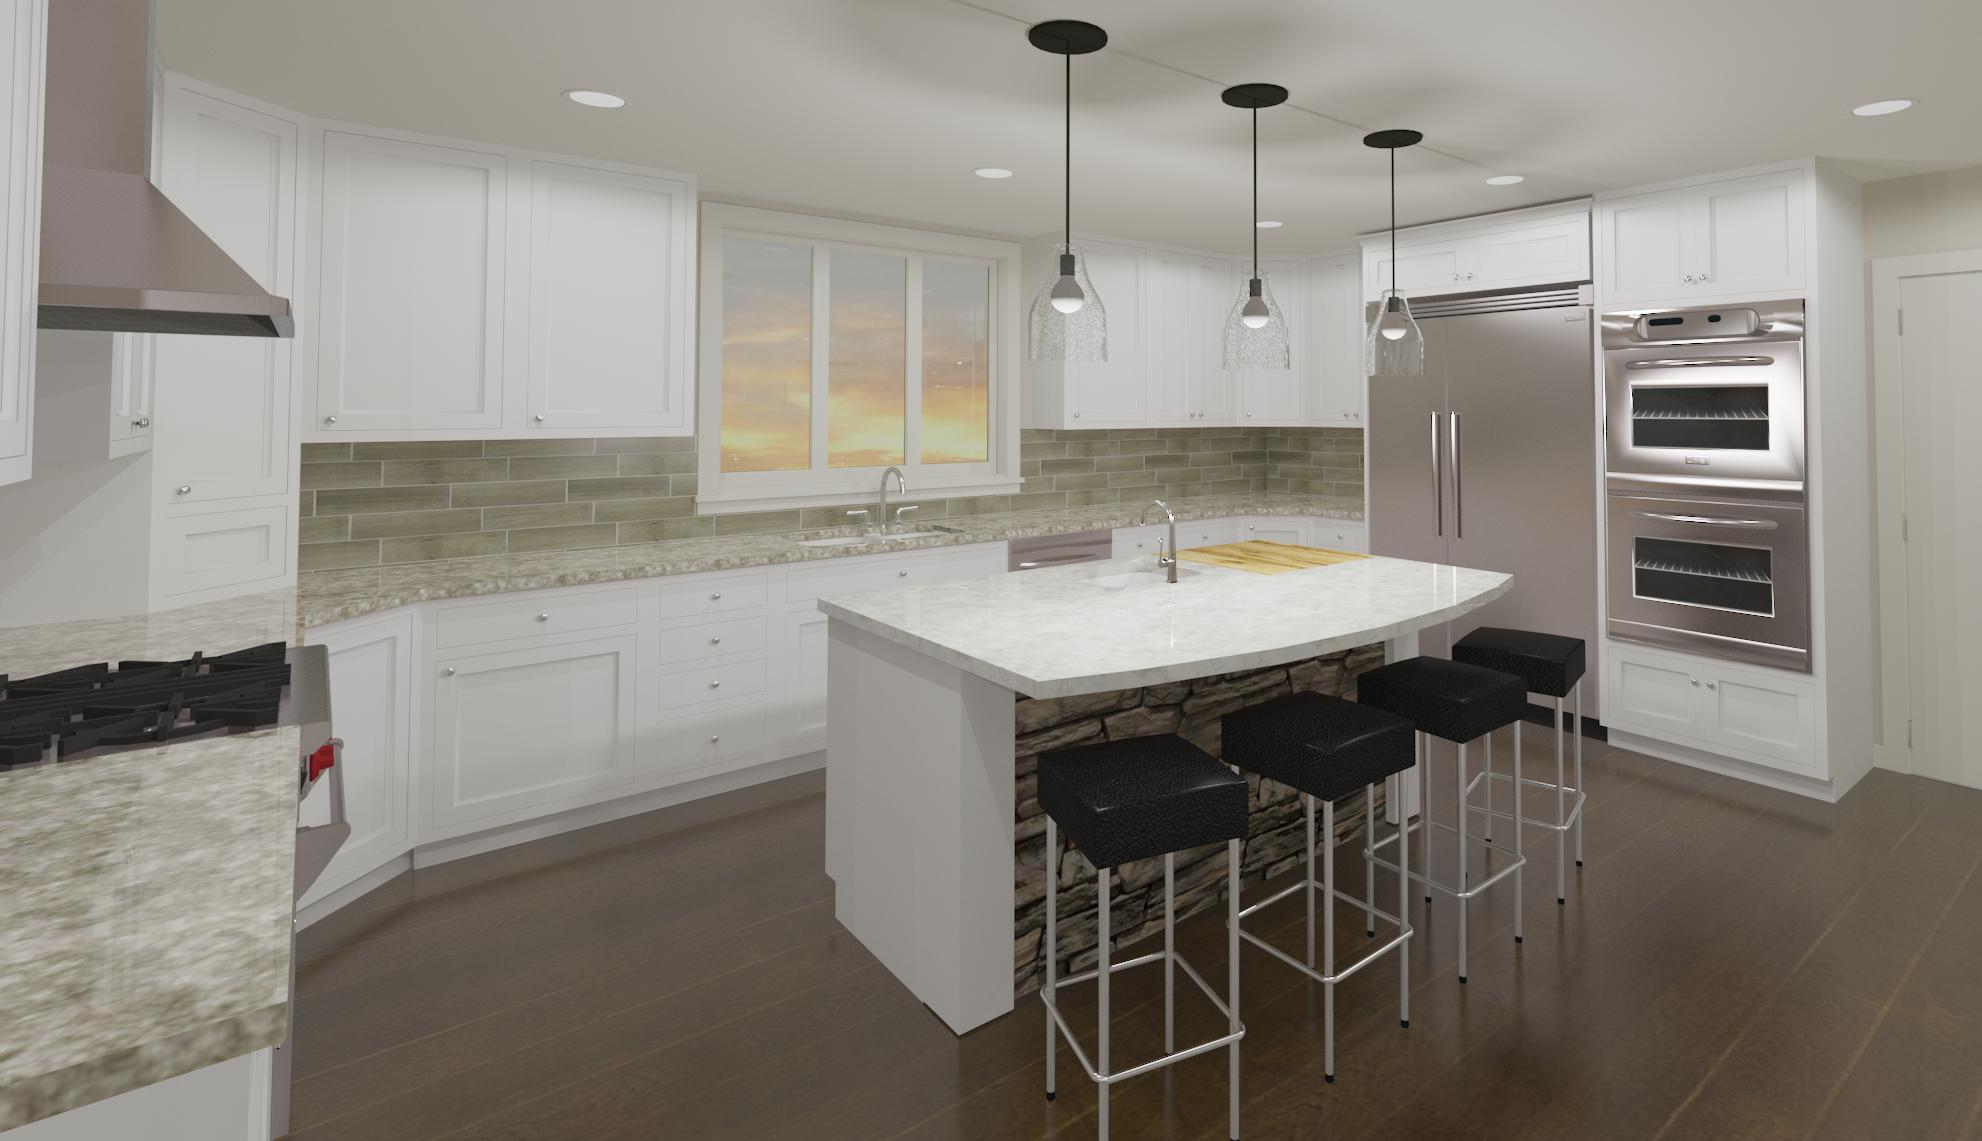 Wattz Residence - Proposed Kitchen Raytrace 2.22.16.jpg